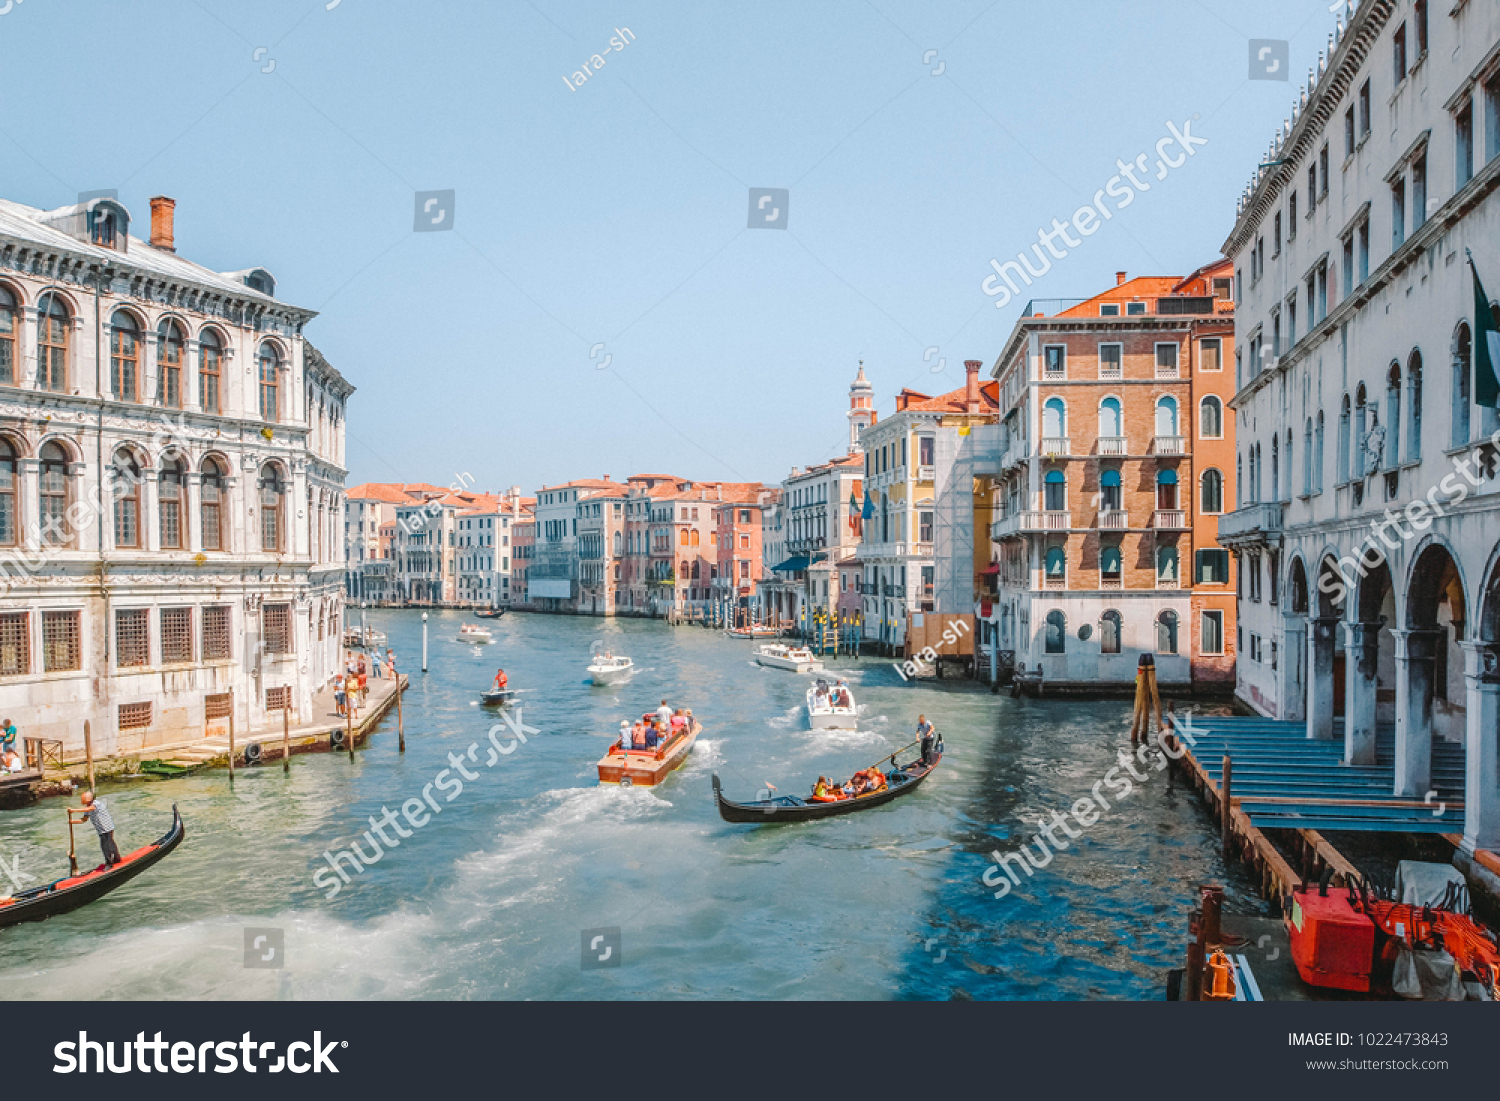 Gondolas and motor boats with tourists traveling the Grand Canal in Venice, Italy #1022473843